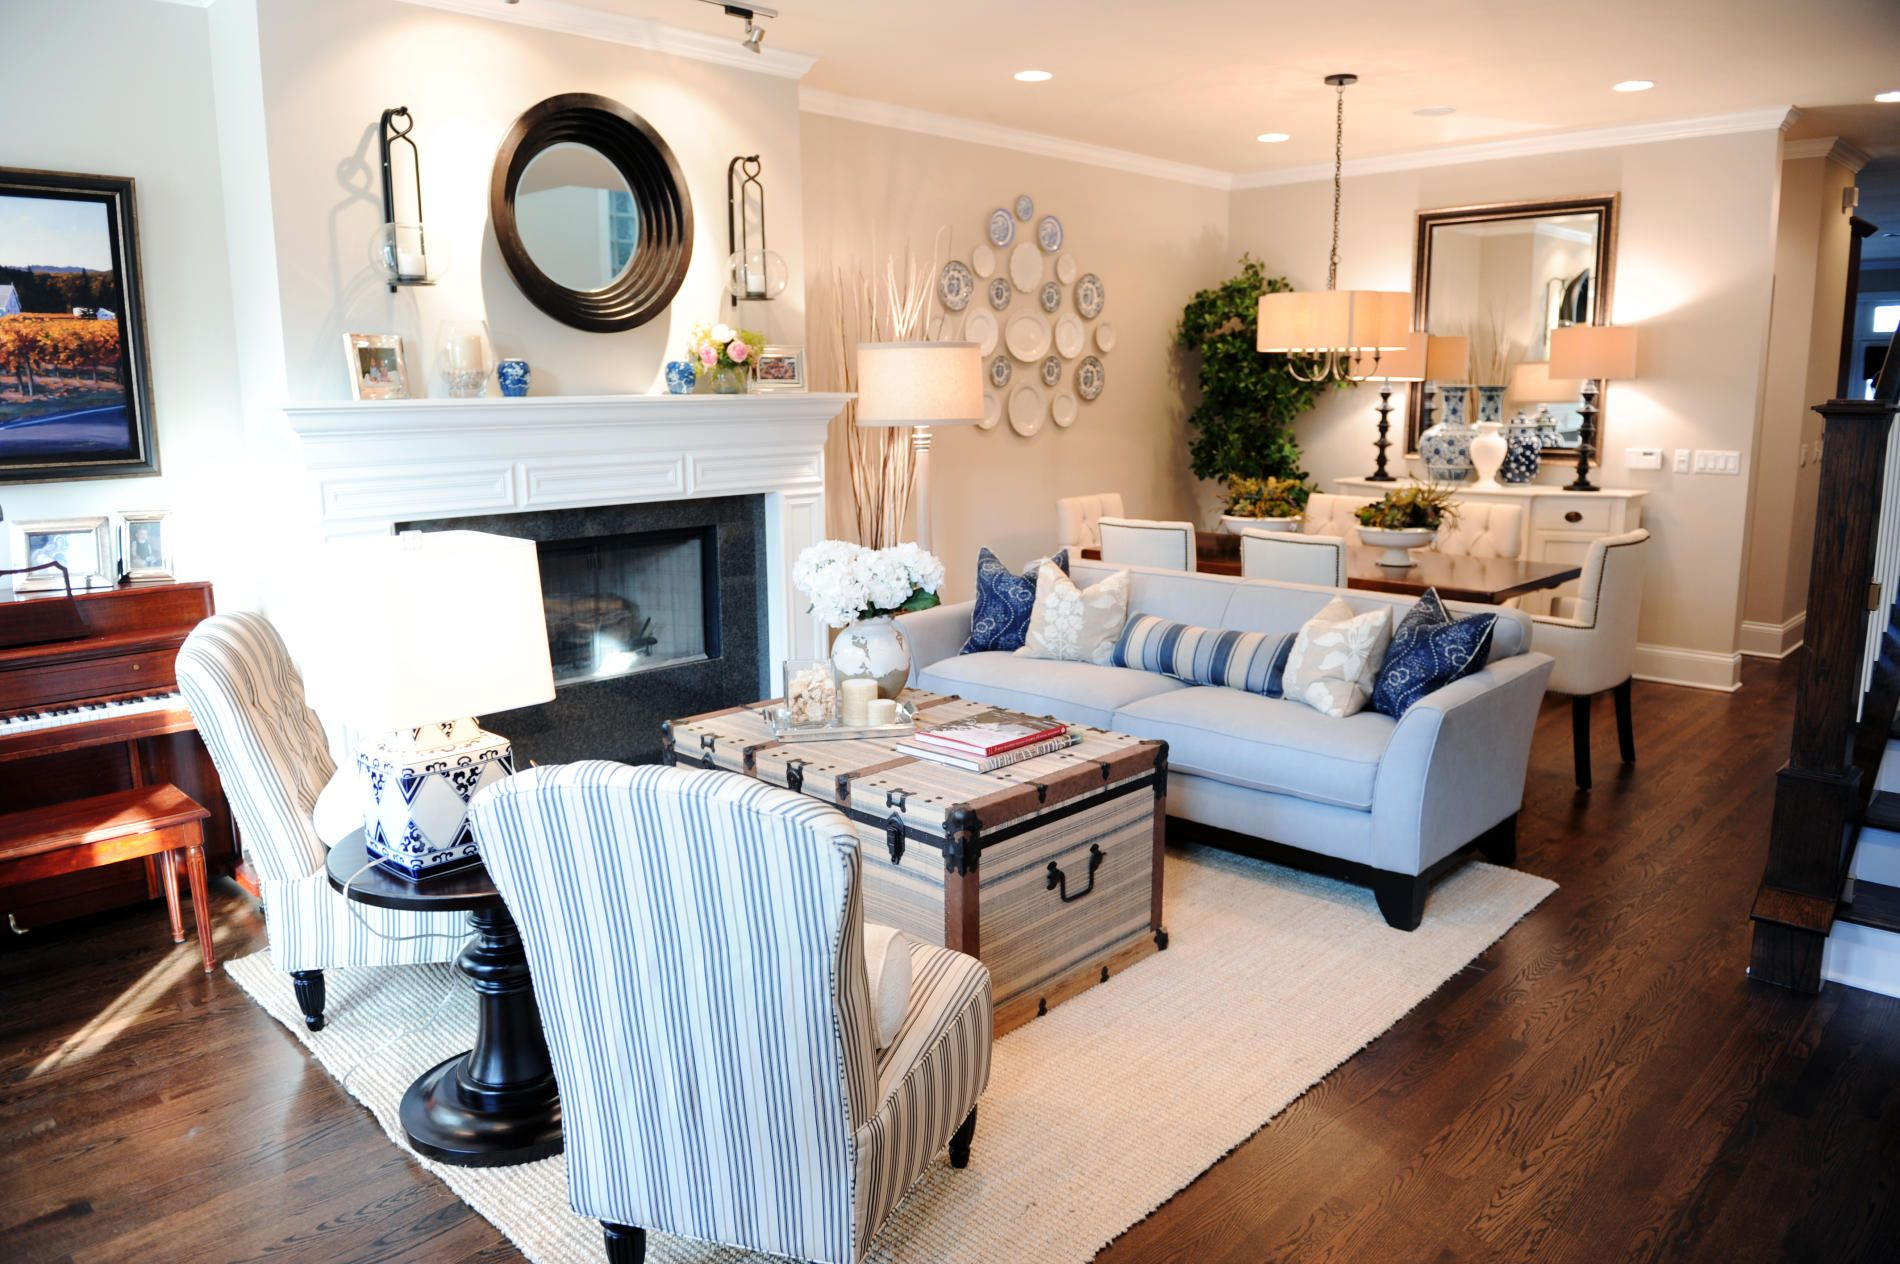 Super Cute Nautical Living Room Dining Room Combo I Love The Old Chest As A Coffee Table